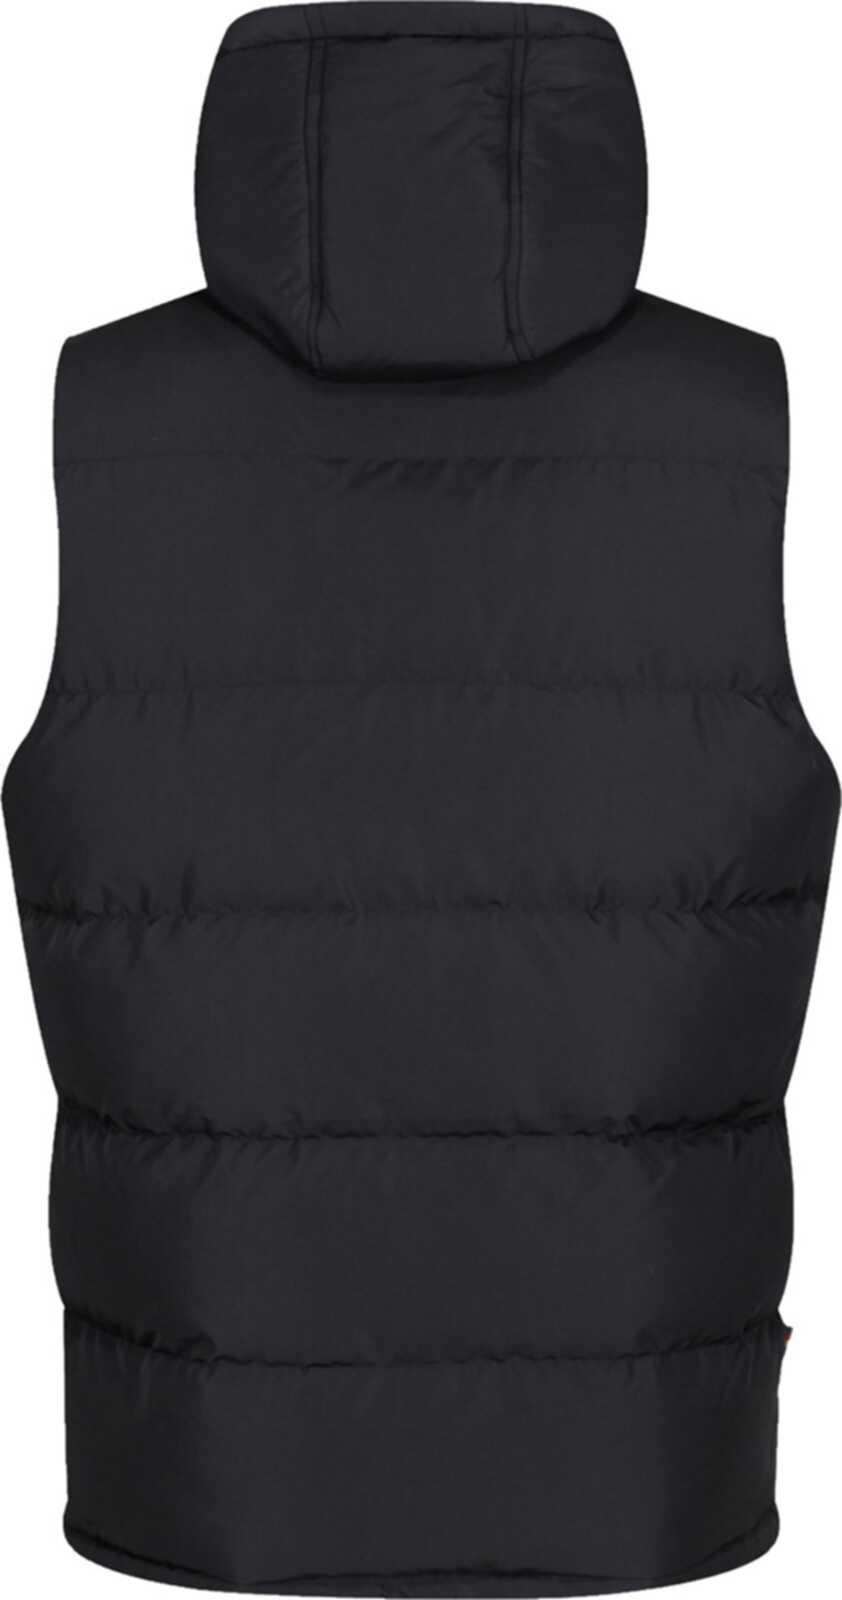 Luke 1977 Egrit Padded Gilet Black